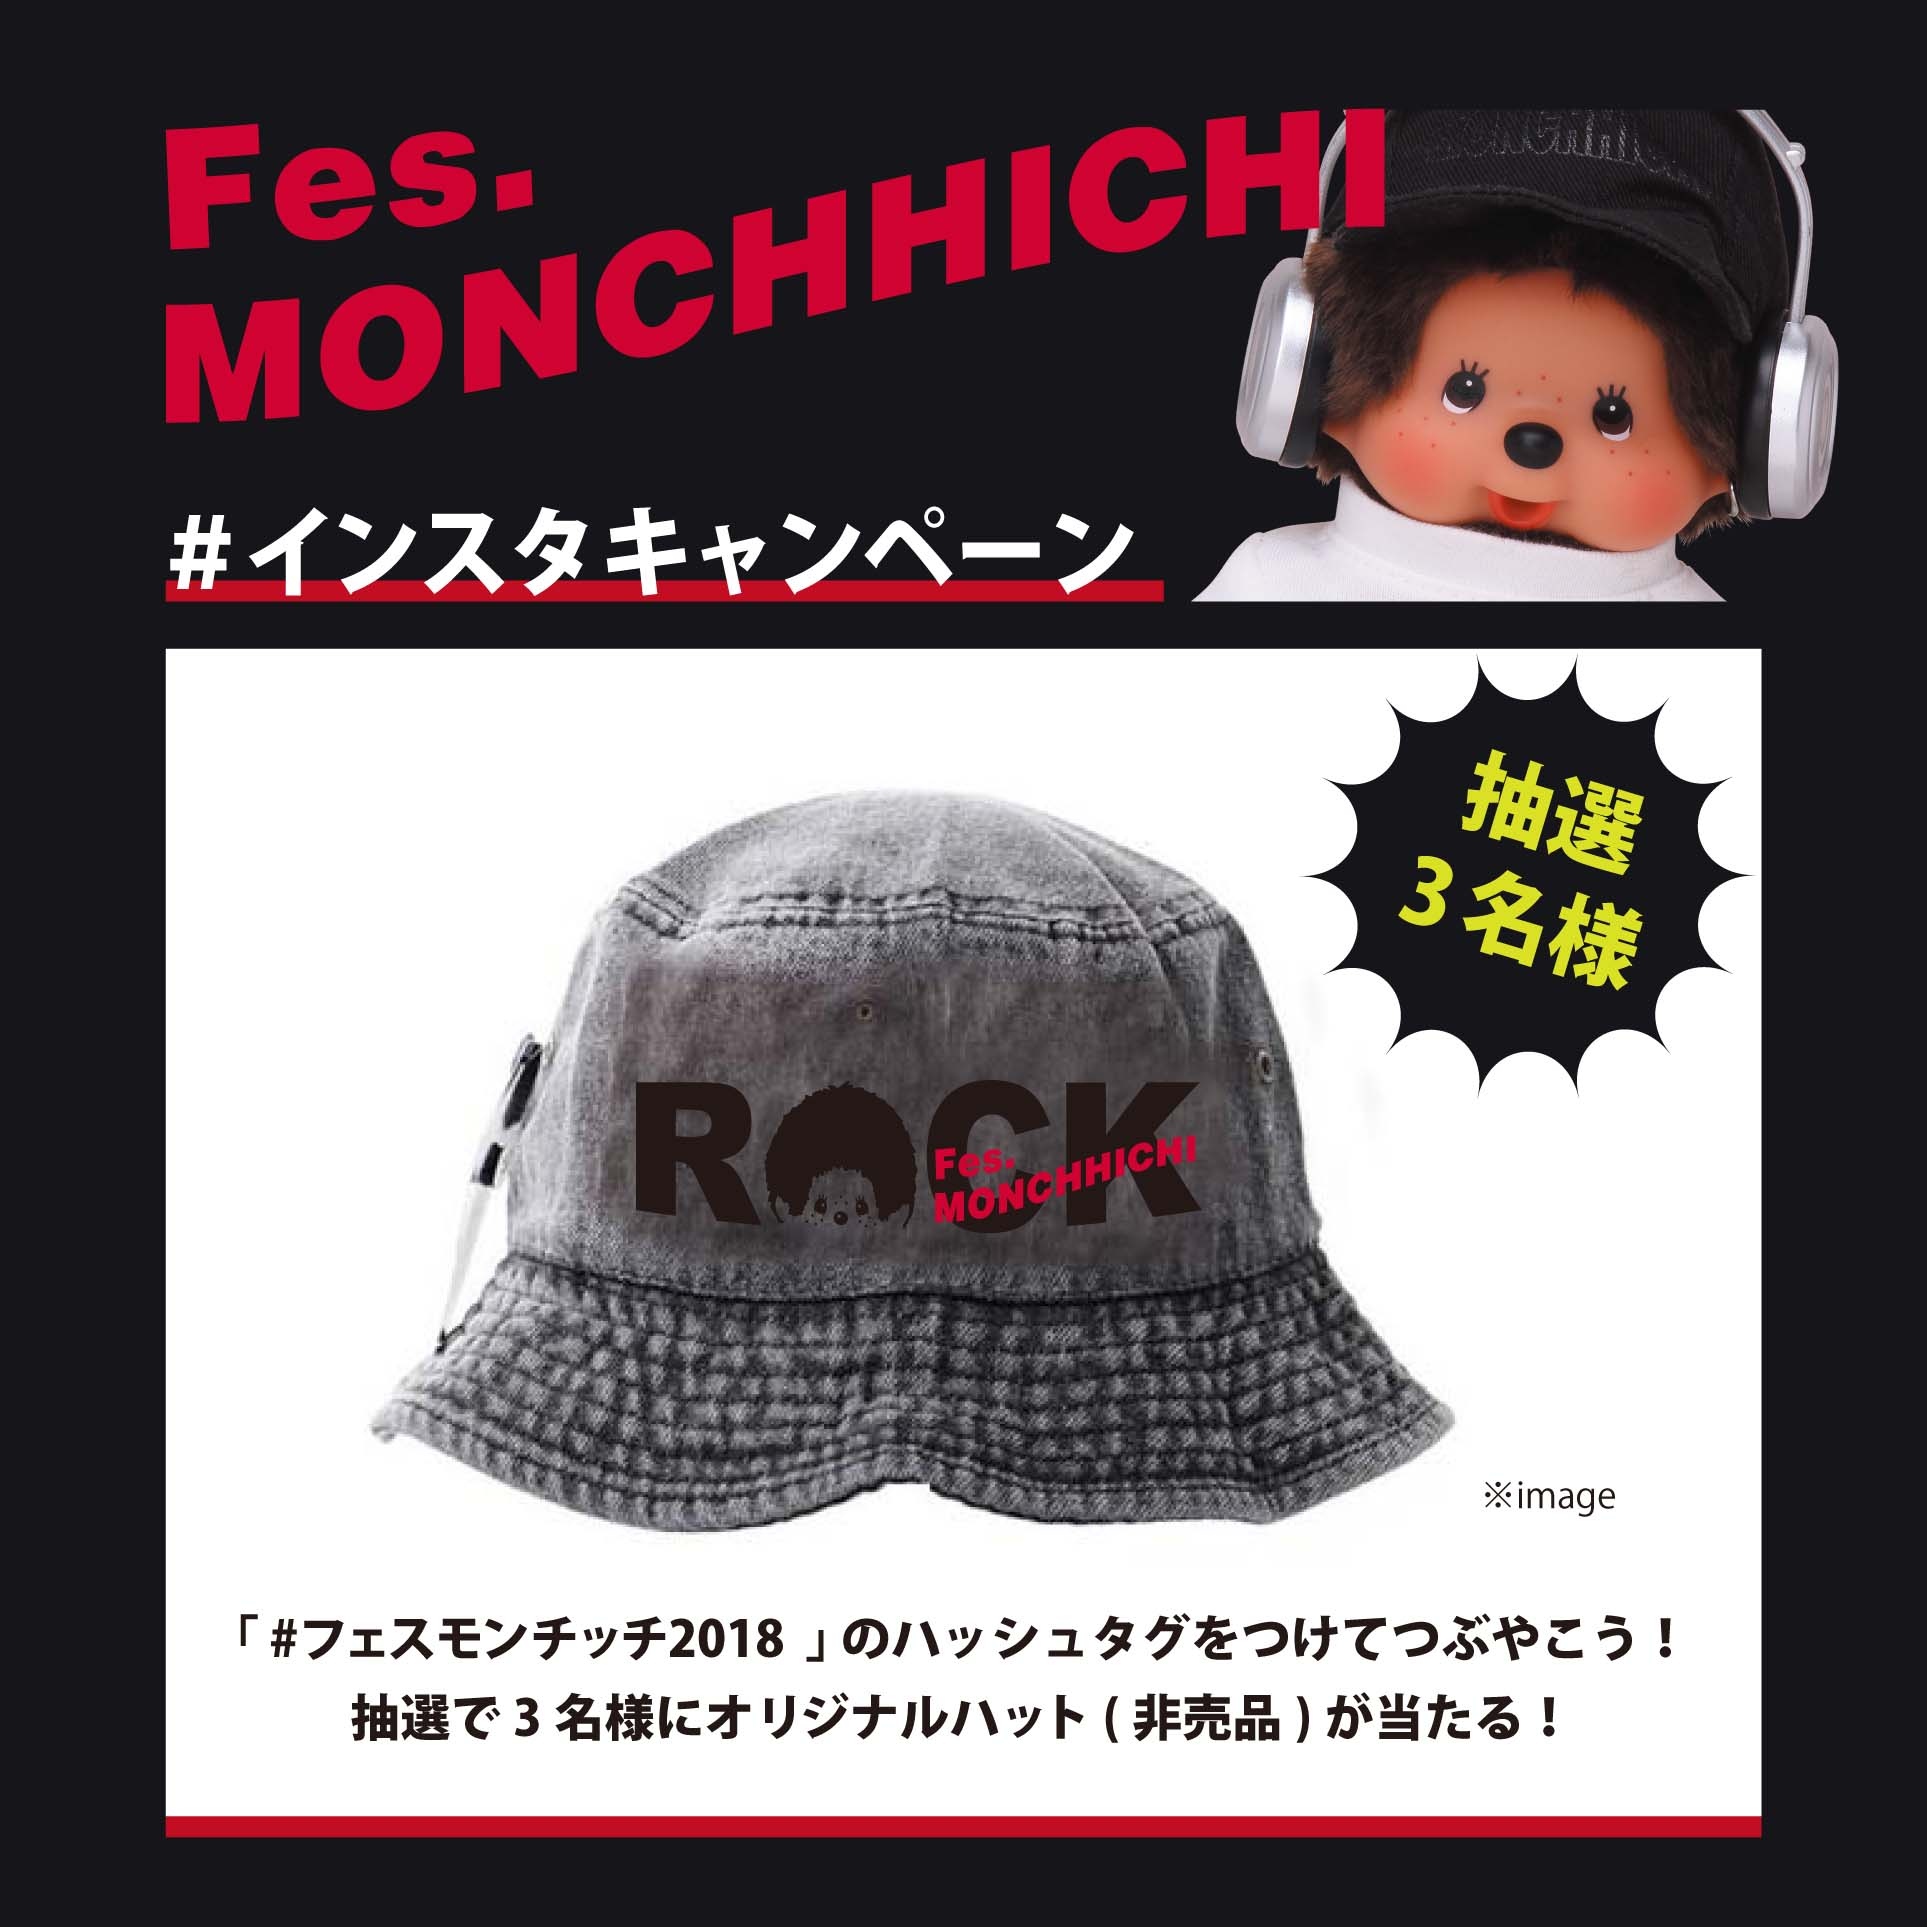 http://www.monchhichi.co.jp/files/news/news/2018july/instagramfes.jpg